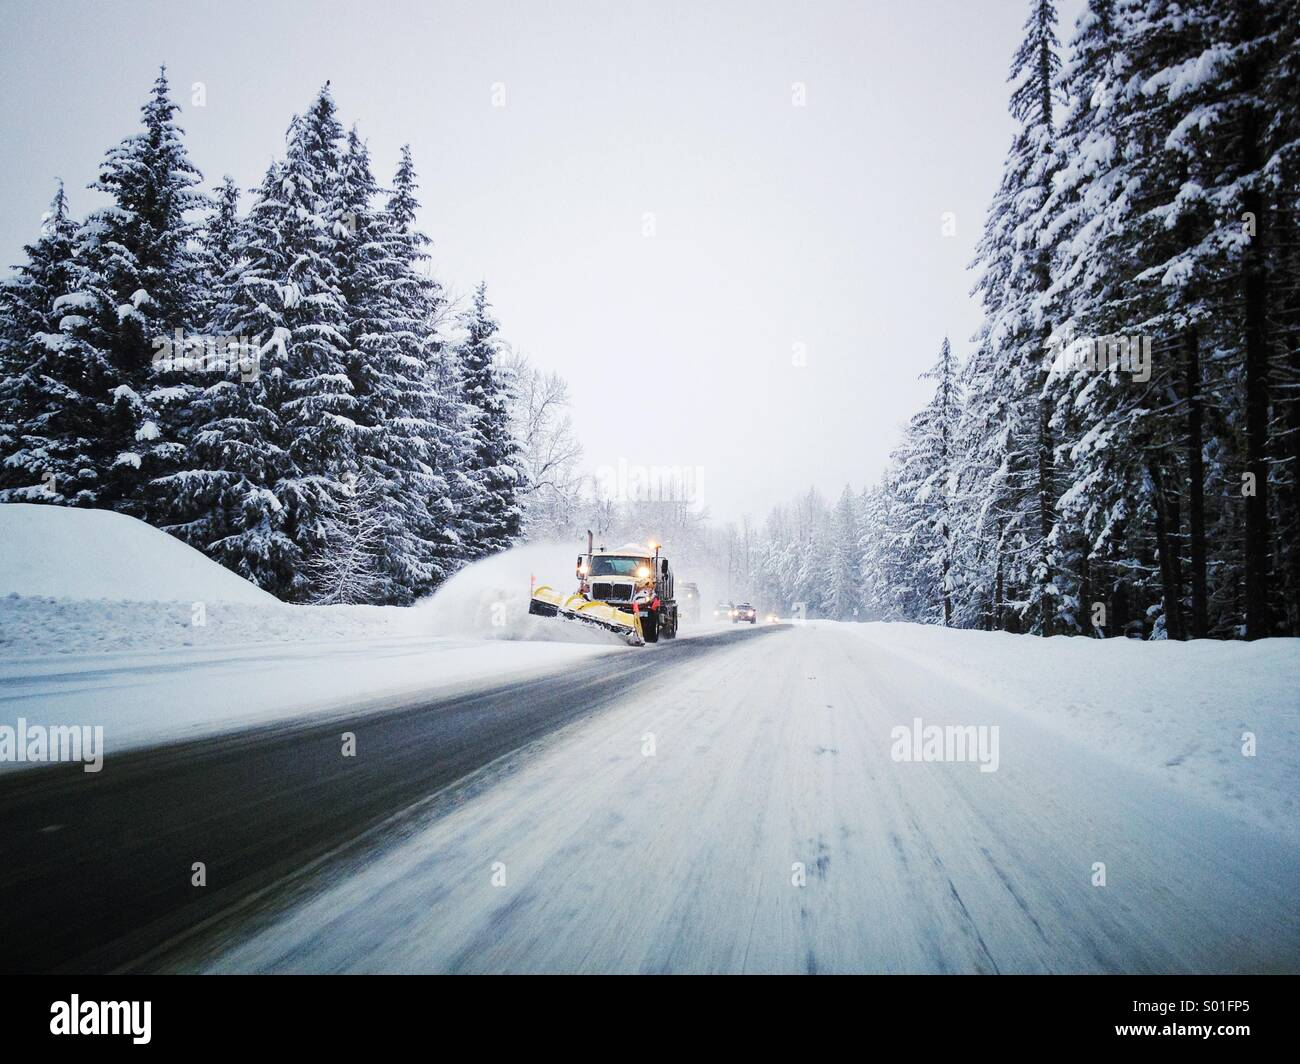 Snowplow clearing wintertime roadway. - Stock Image